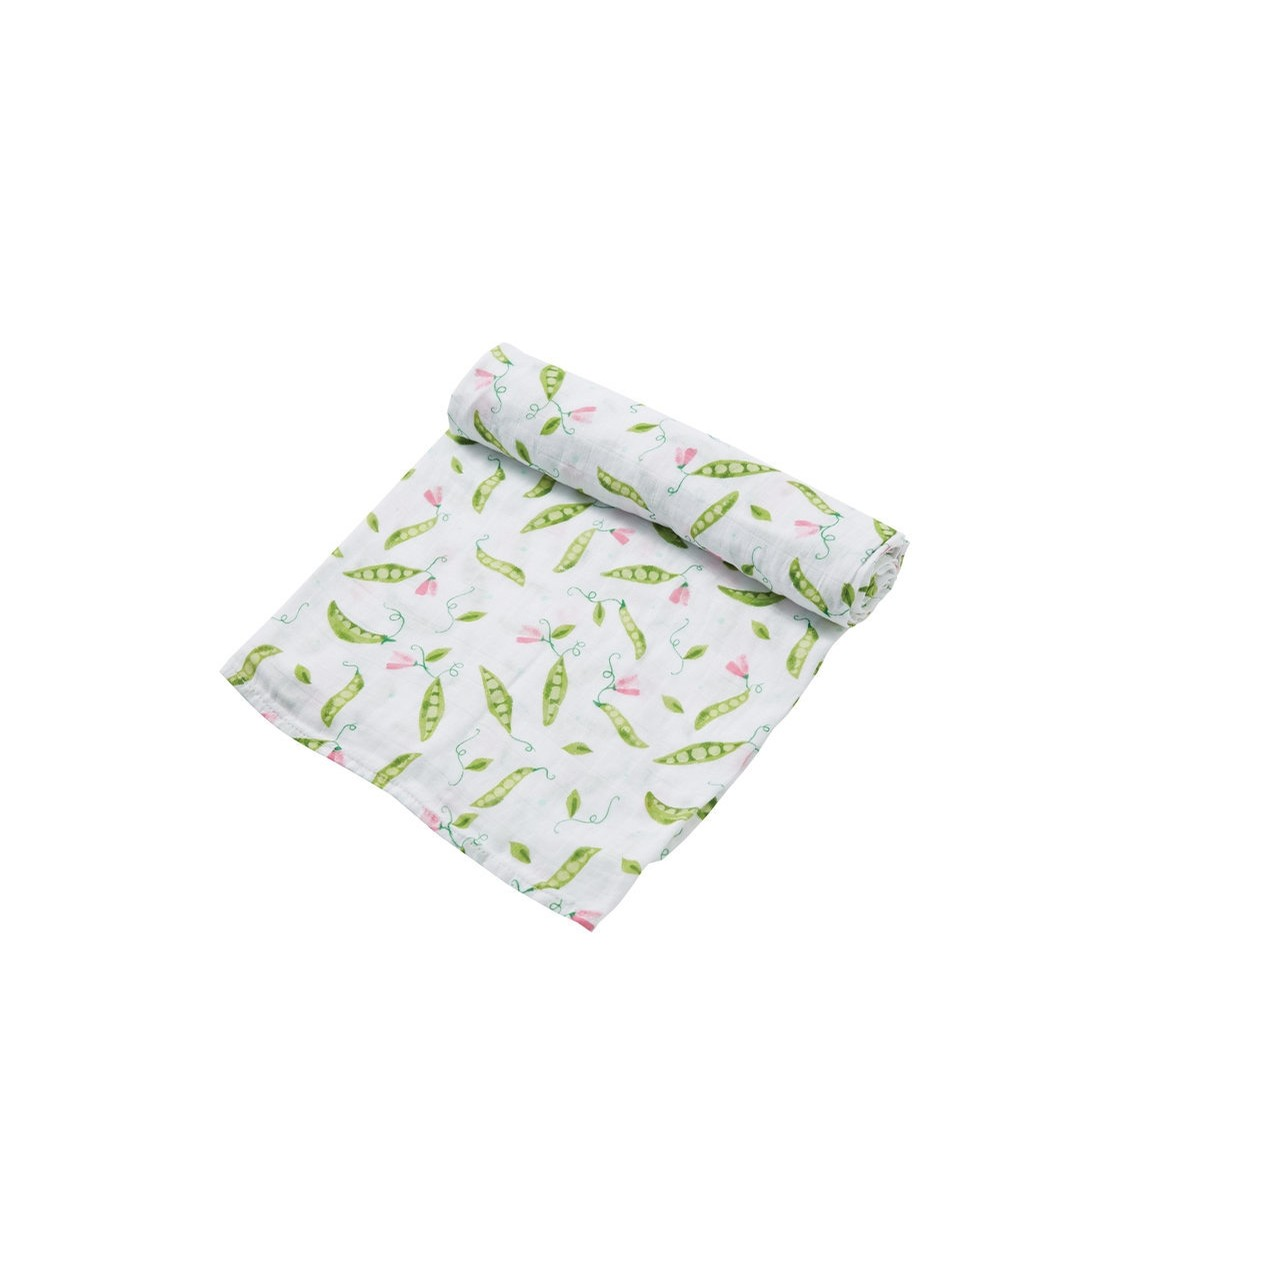 Swaddle Blanket - Sweet Pea Blossom